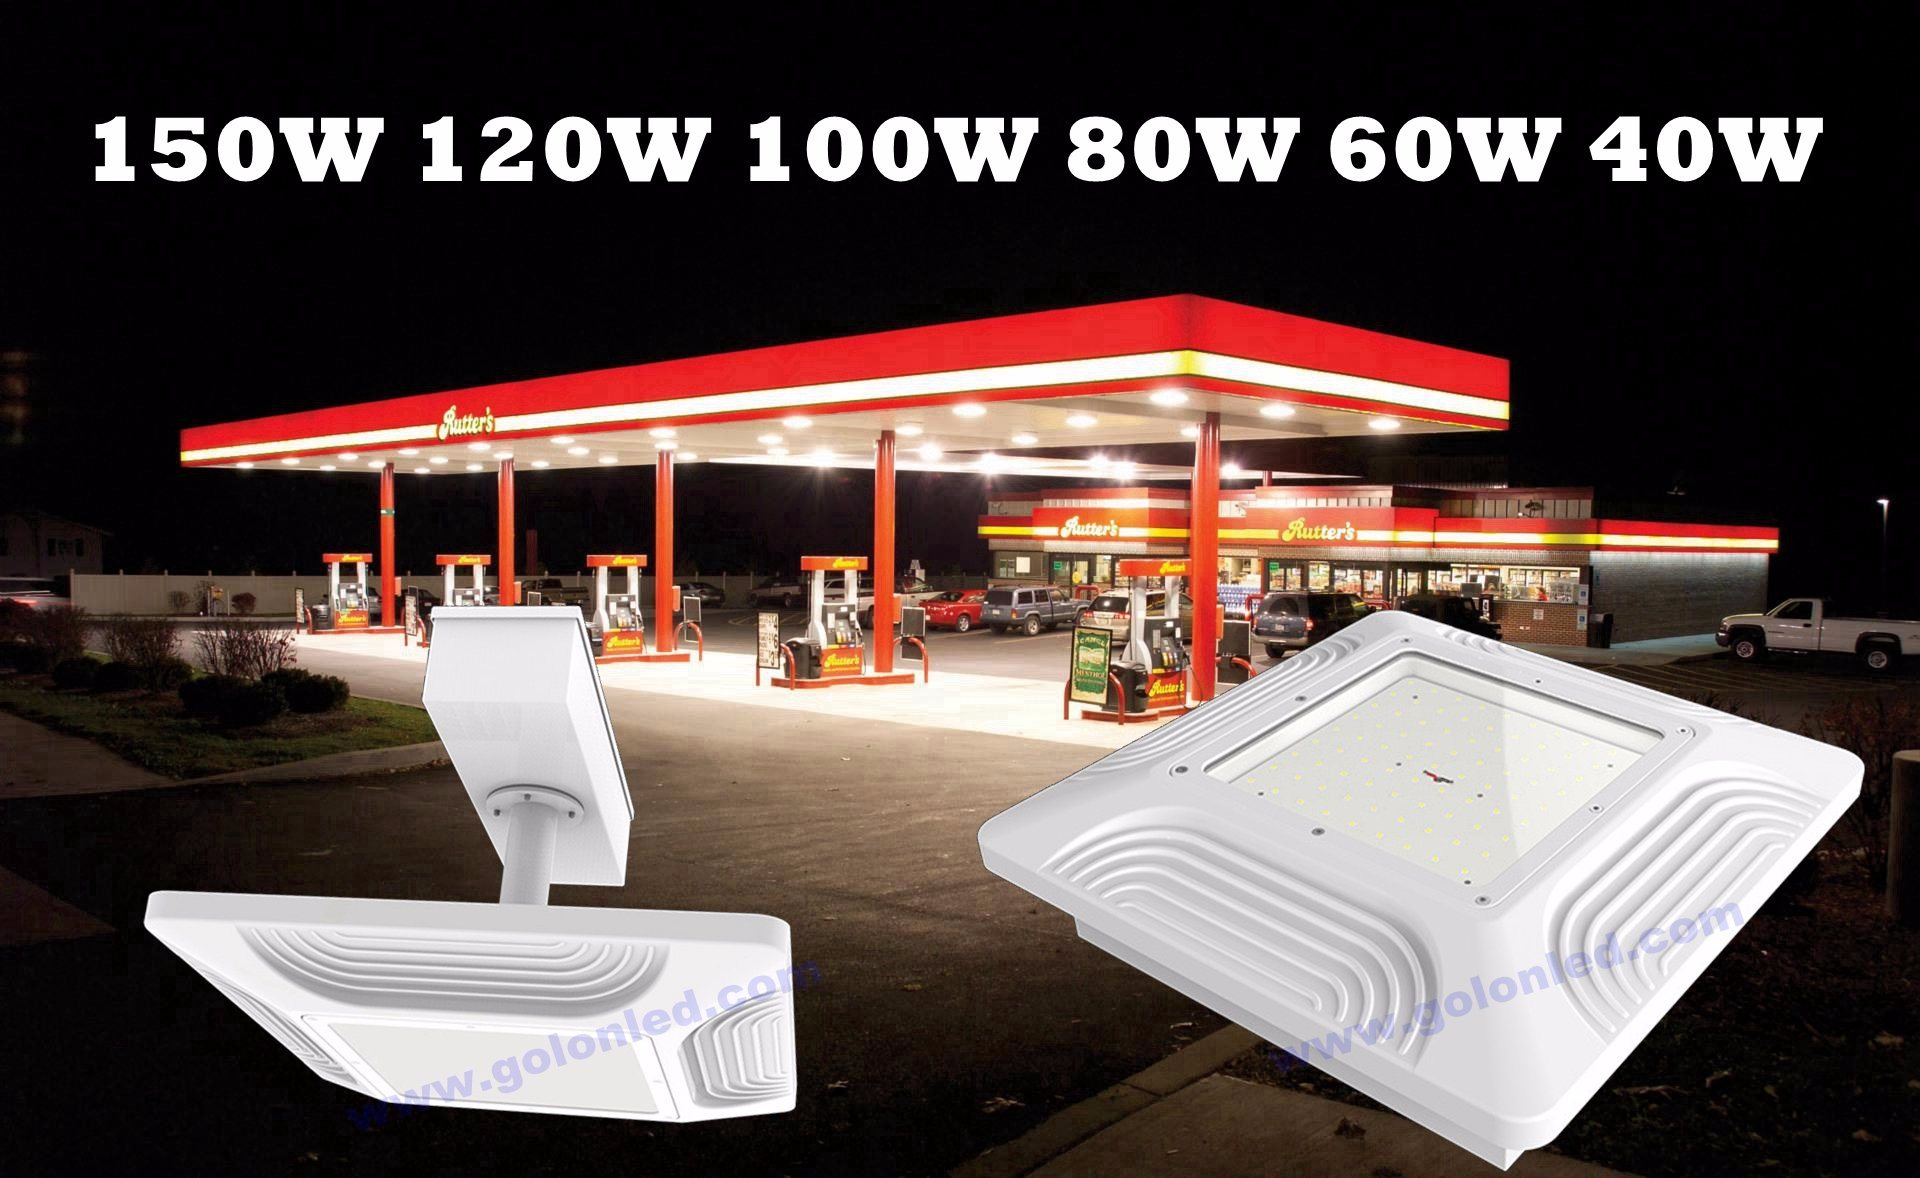 Recessed Ceiling Mounting Lighting 60W 80W 100W 120W 150W Gas Station Lighting Manufacturer Explosion Proof LED Canopy Light